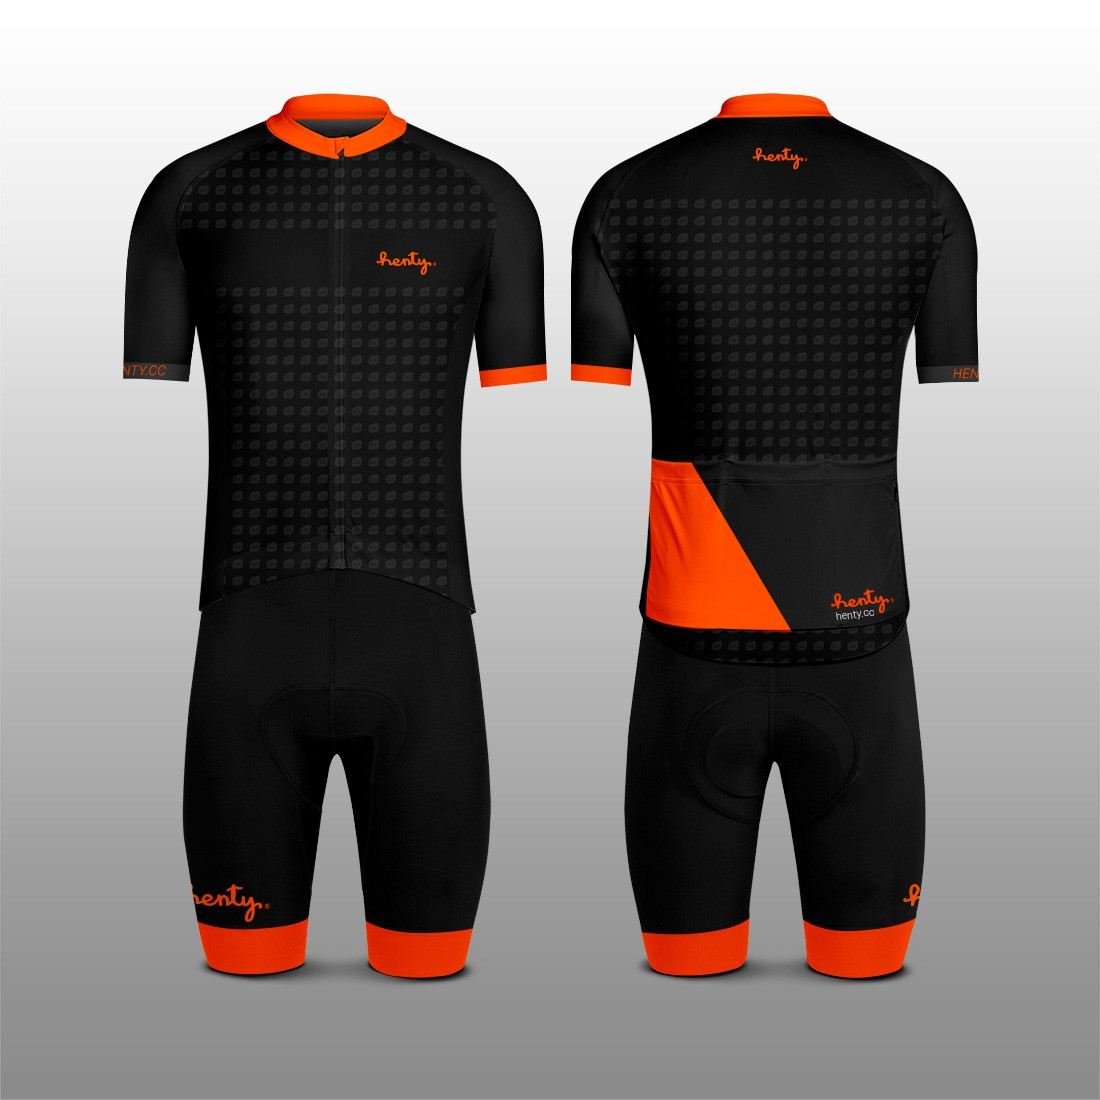 Design simple, clever and classy cycling kit for Henty.cc